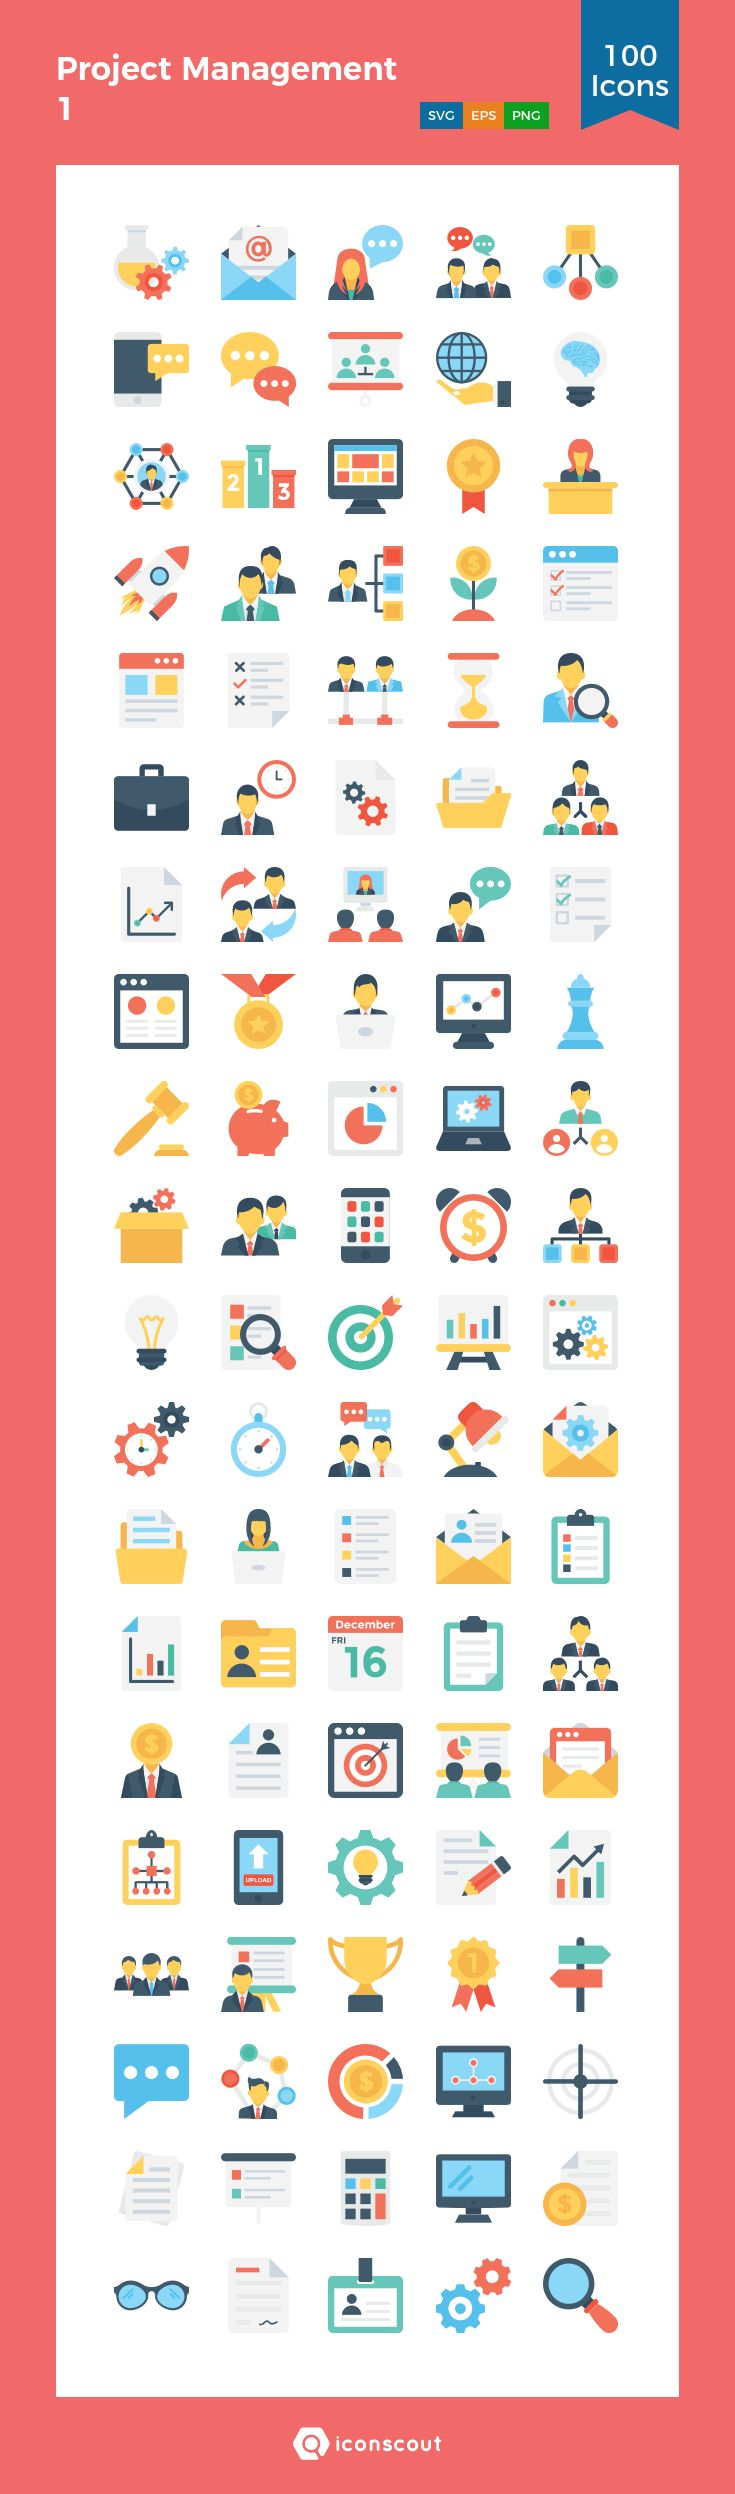 Project Management 1  Icon Pack - 100 Flat Icons